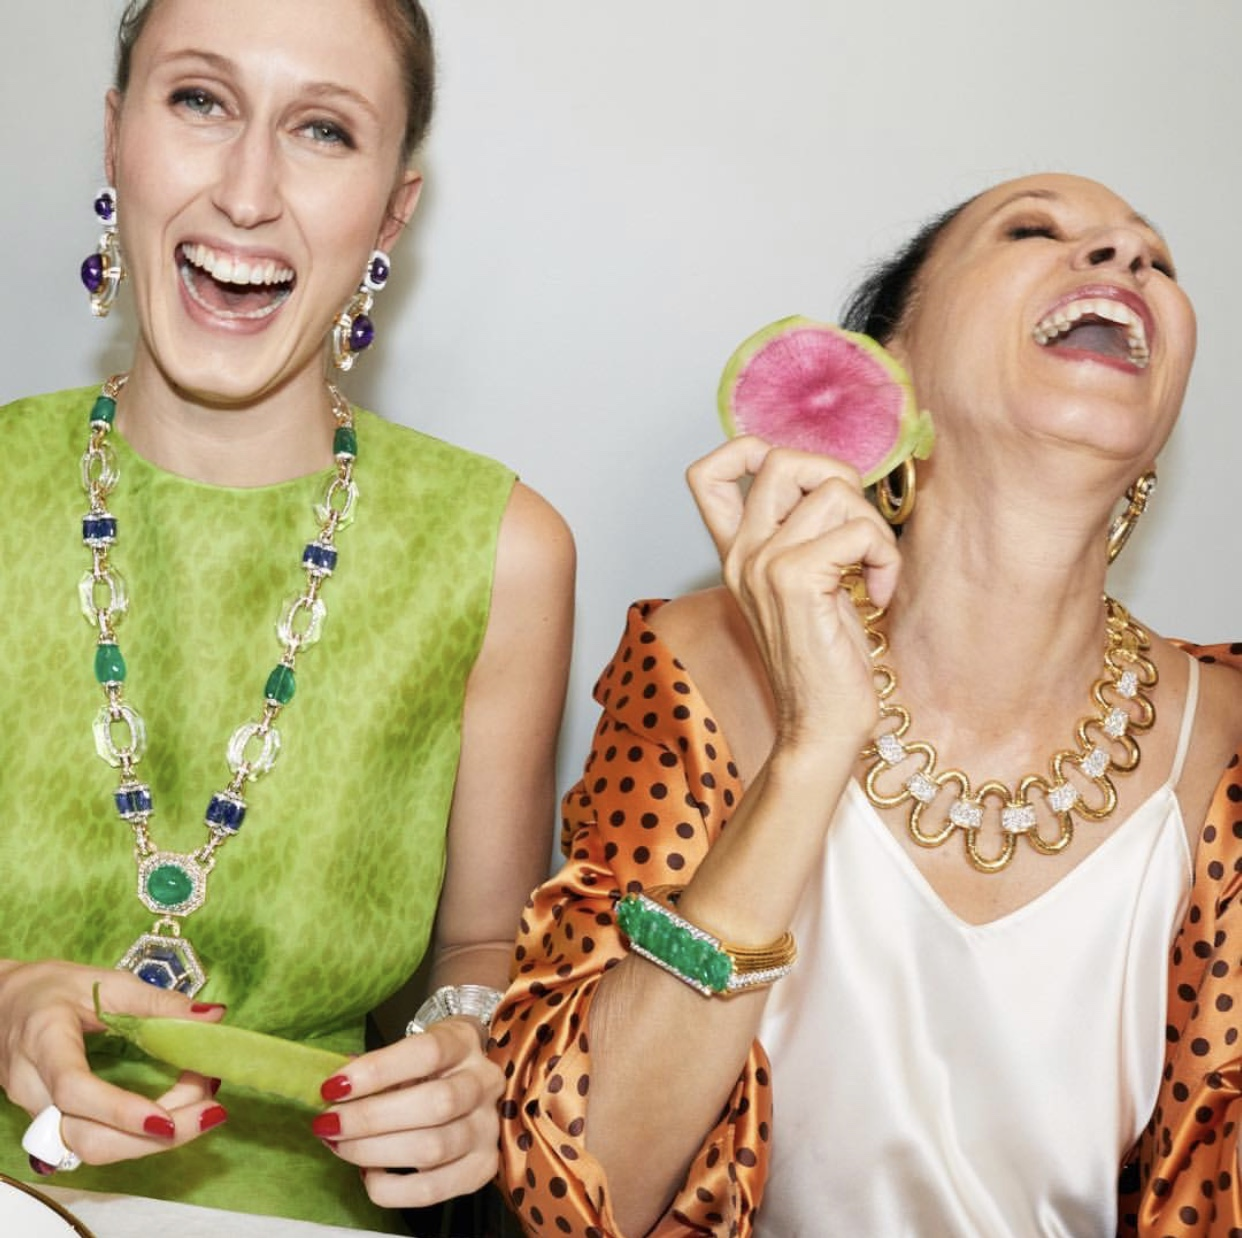 Pat Cleveland for David Webb Jewelers. Shot by Juergen Teller.